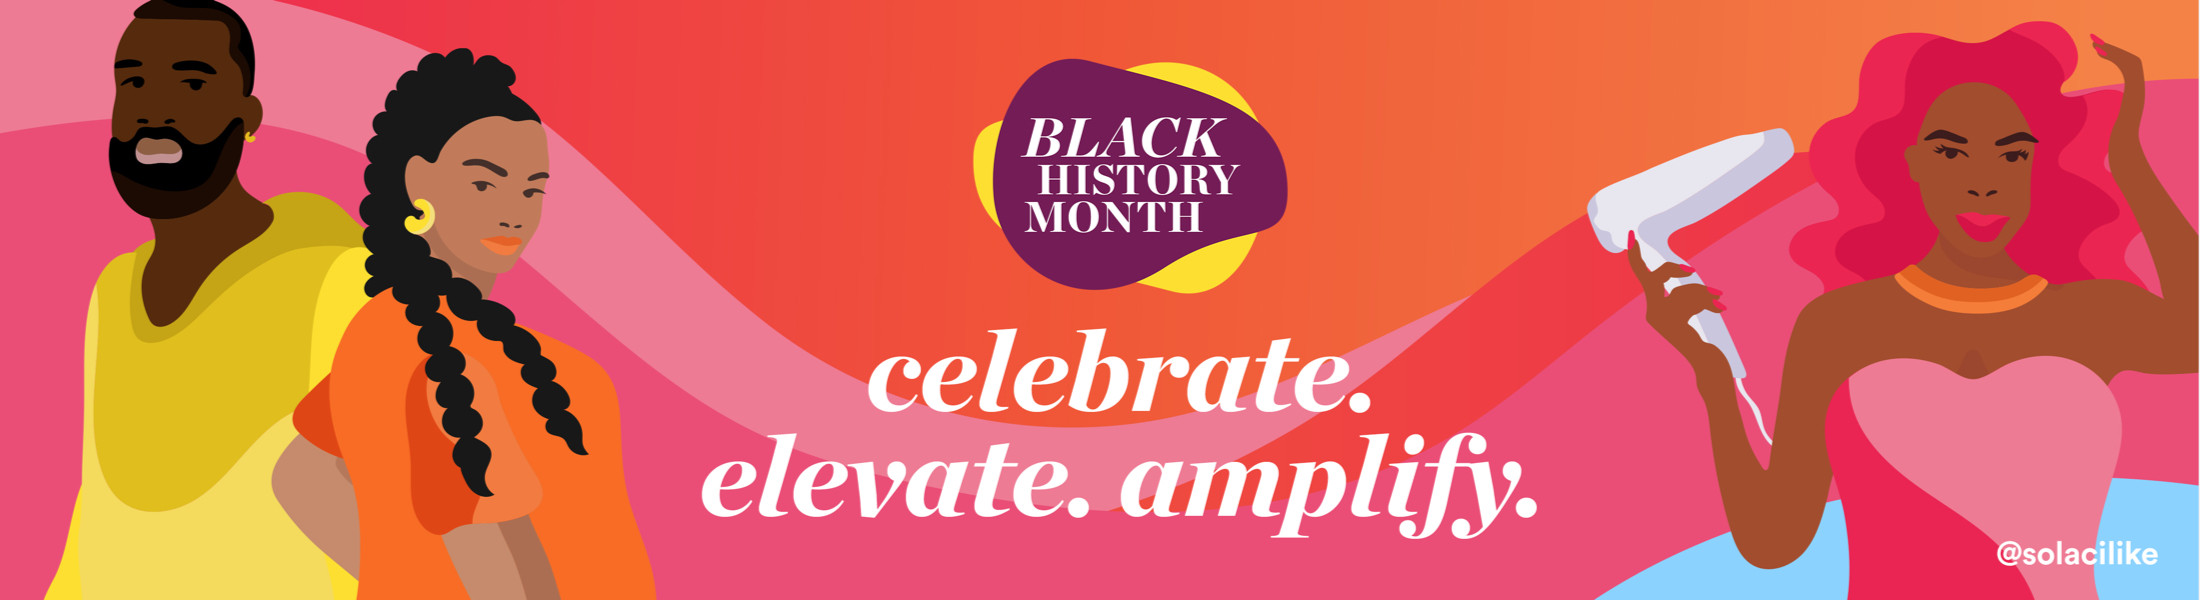 Beauty Without Limits - Black History Month